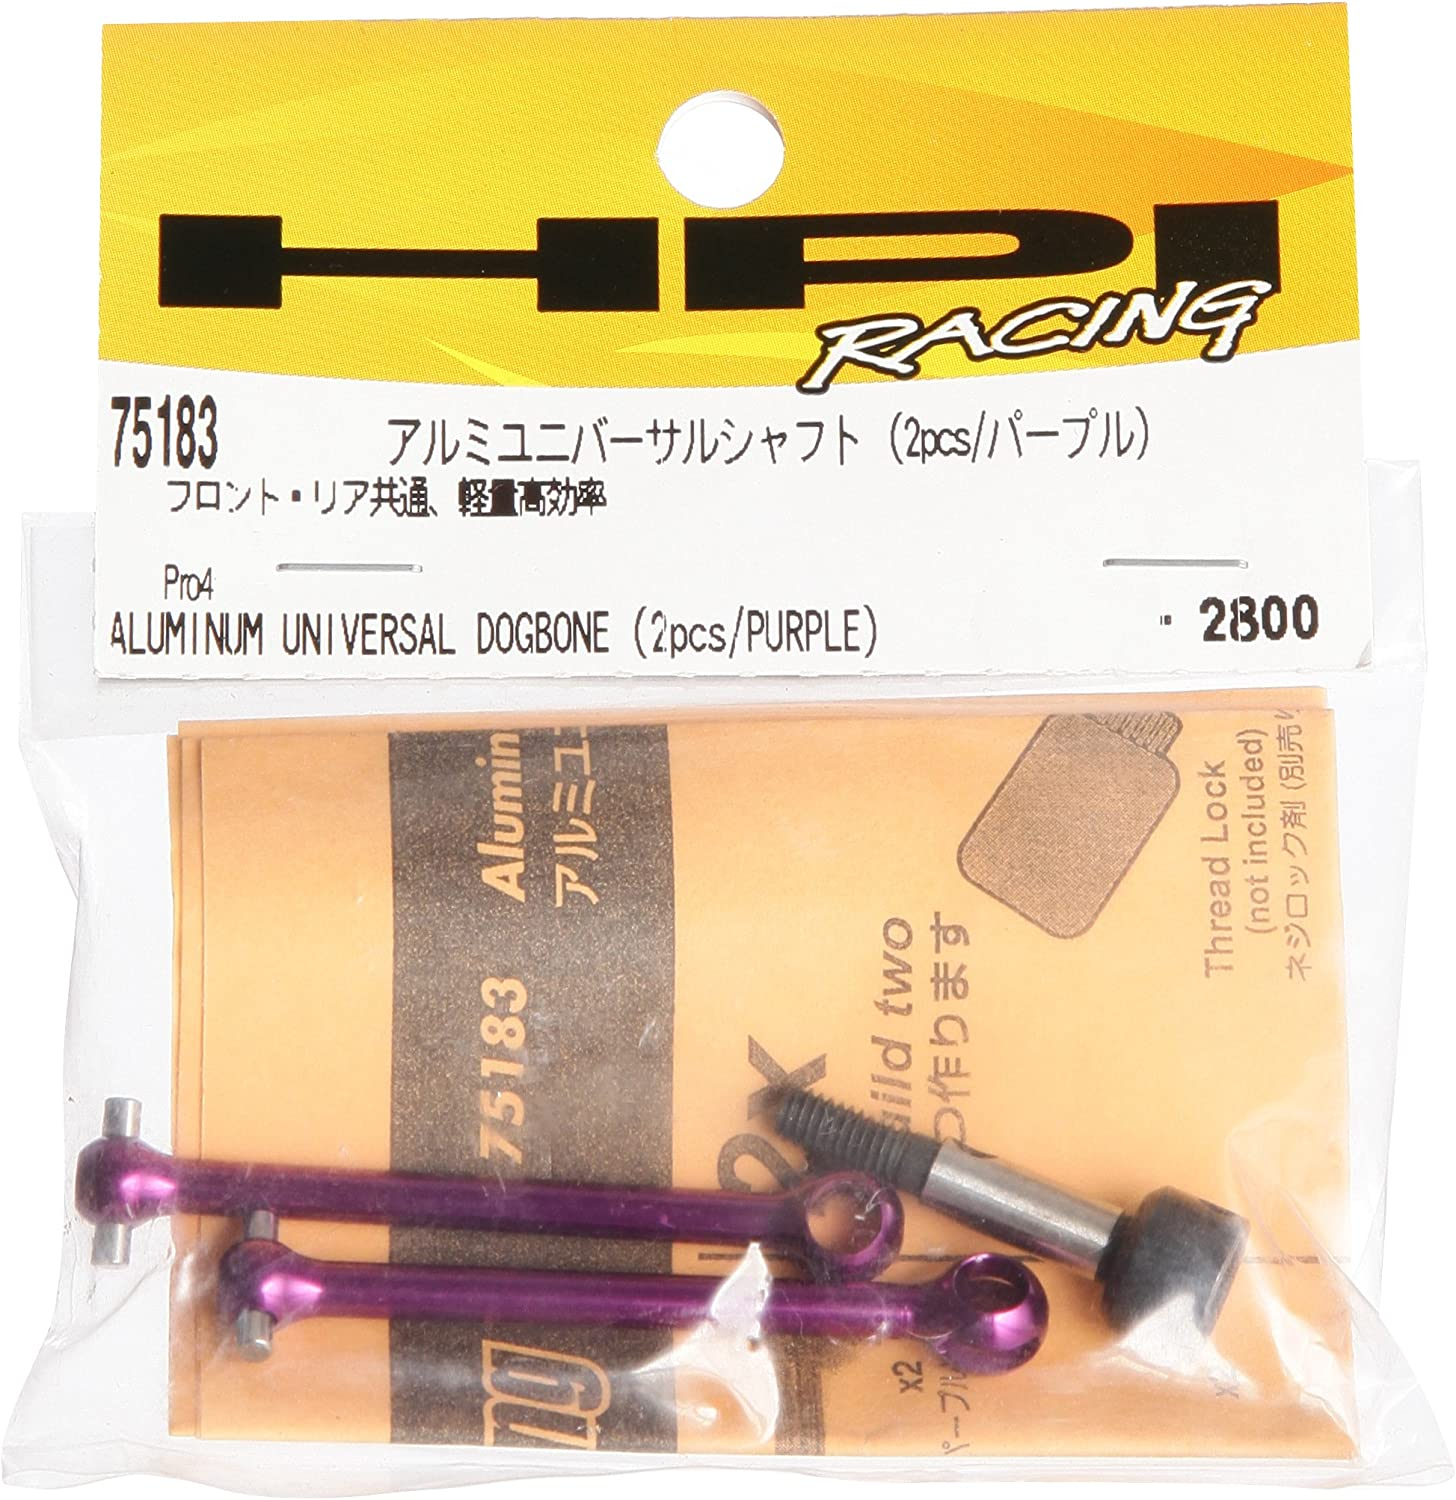 Aluminum Universal Shaft (2pcs   Purple) 75 183 (Japan import   The package and the manual are written in Japanese)